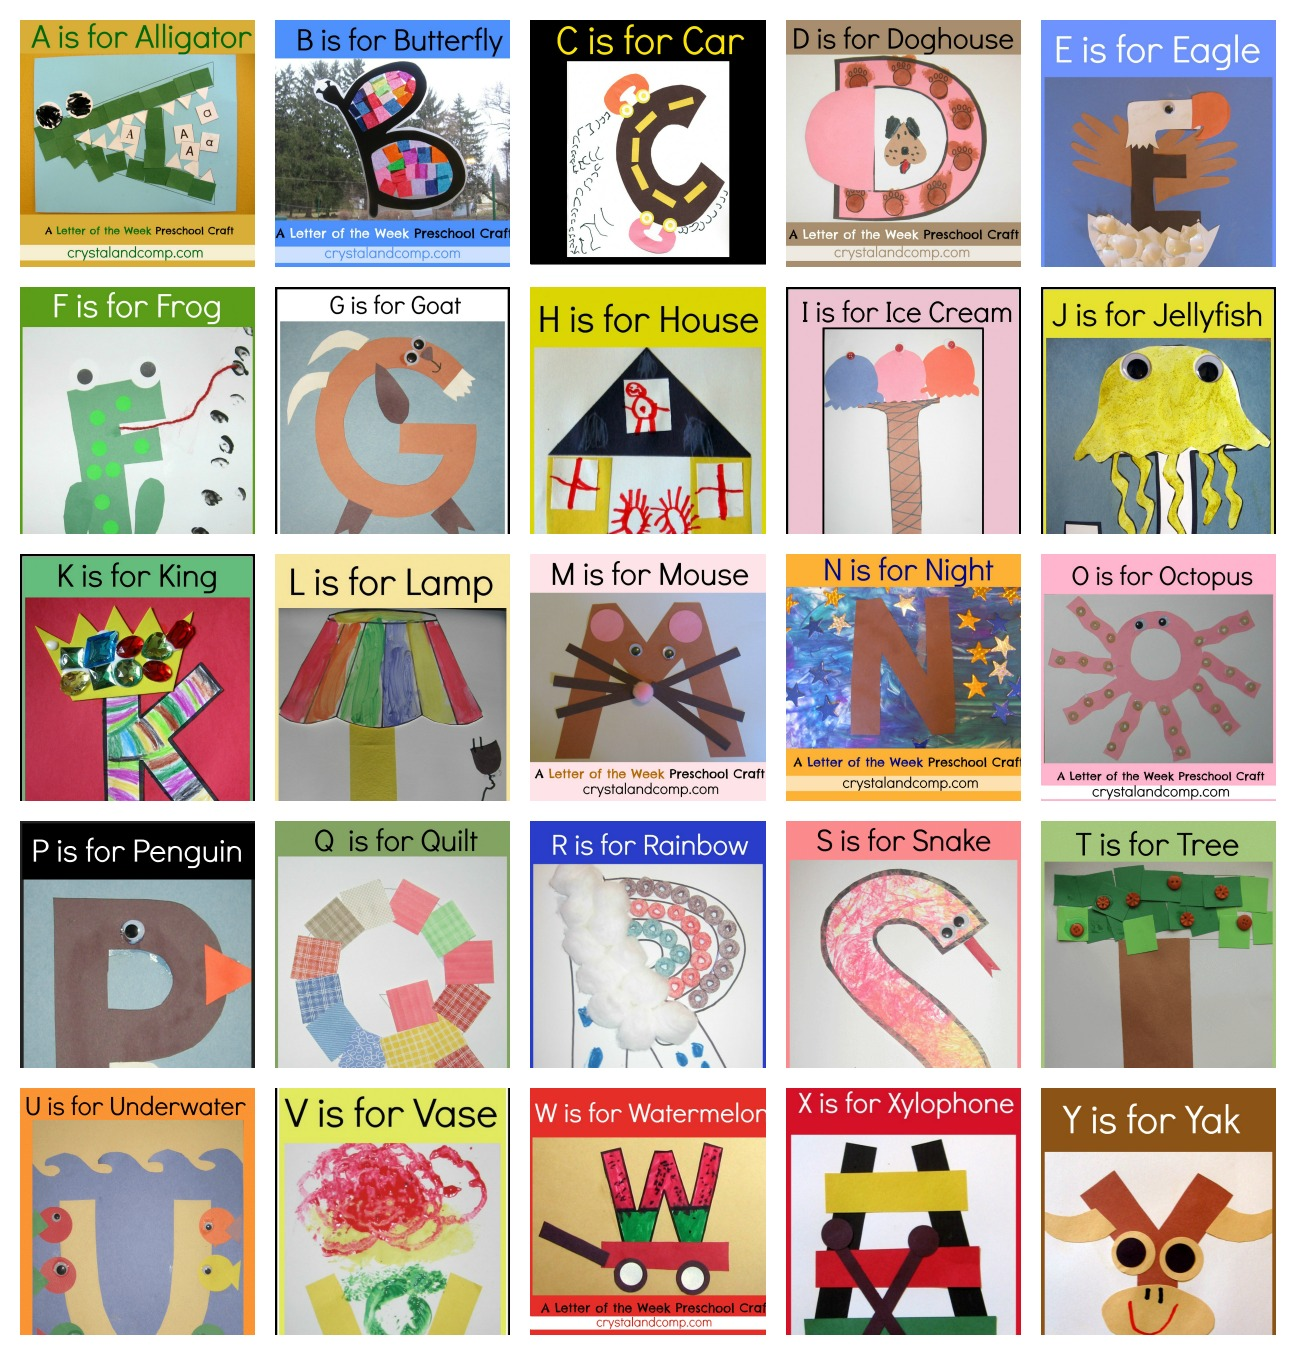 Letter s arts and crafts for preschoolers - Letter S Arts And Crafts For Preschoolers 8